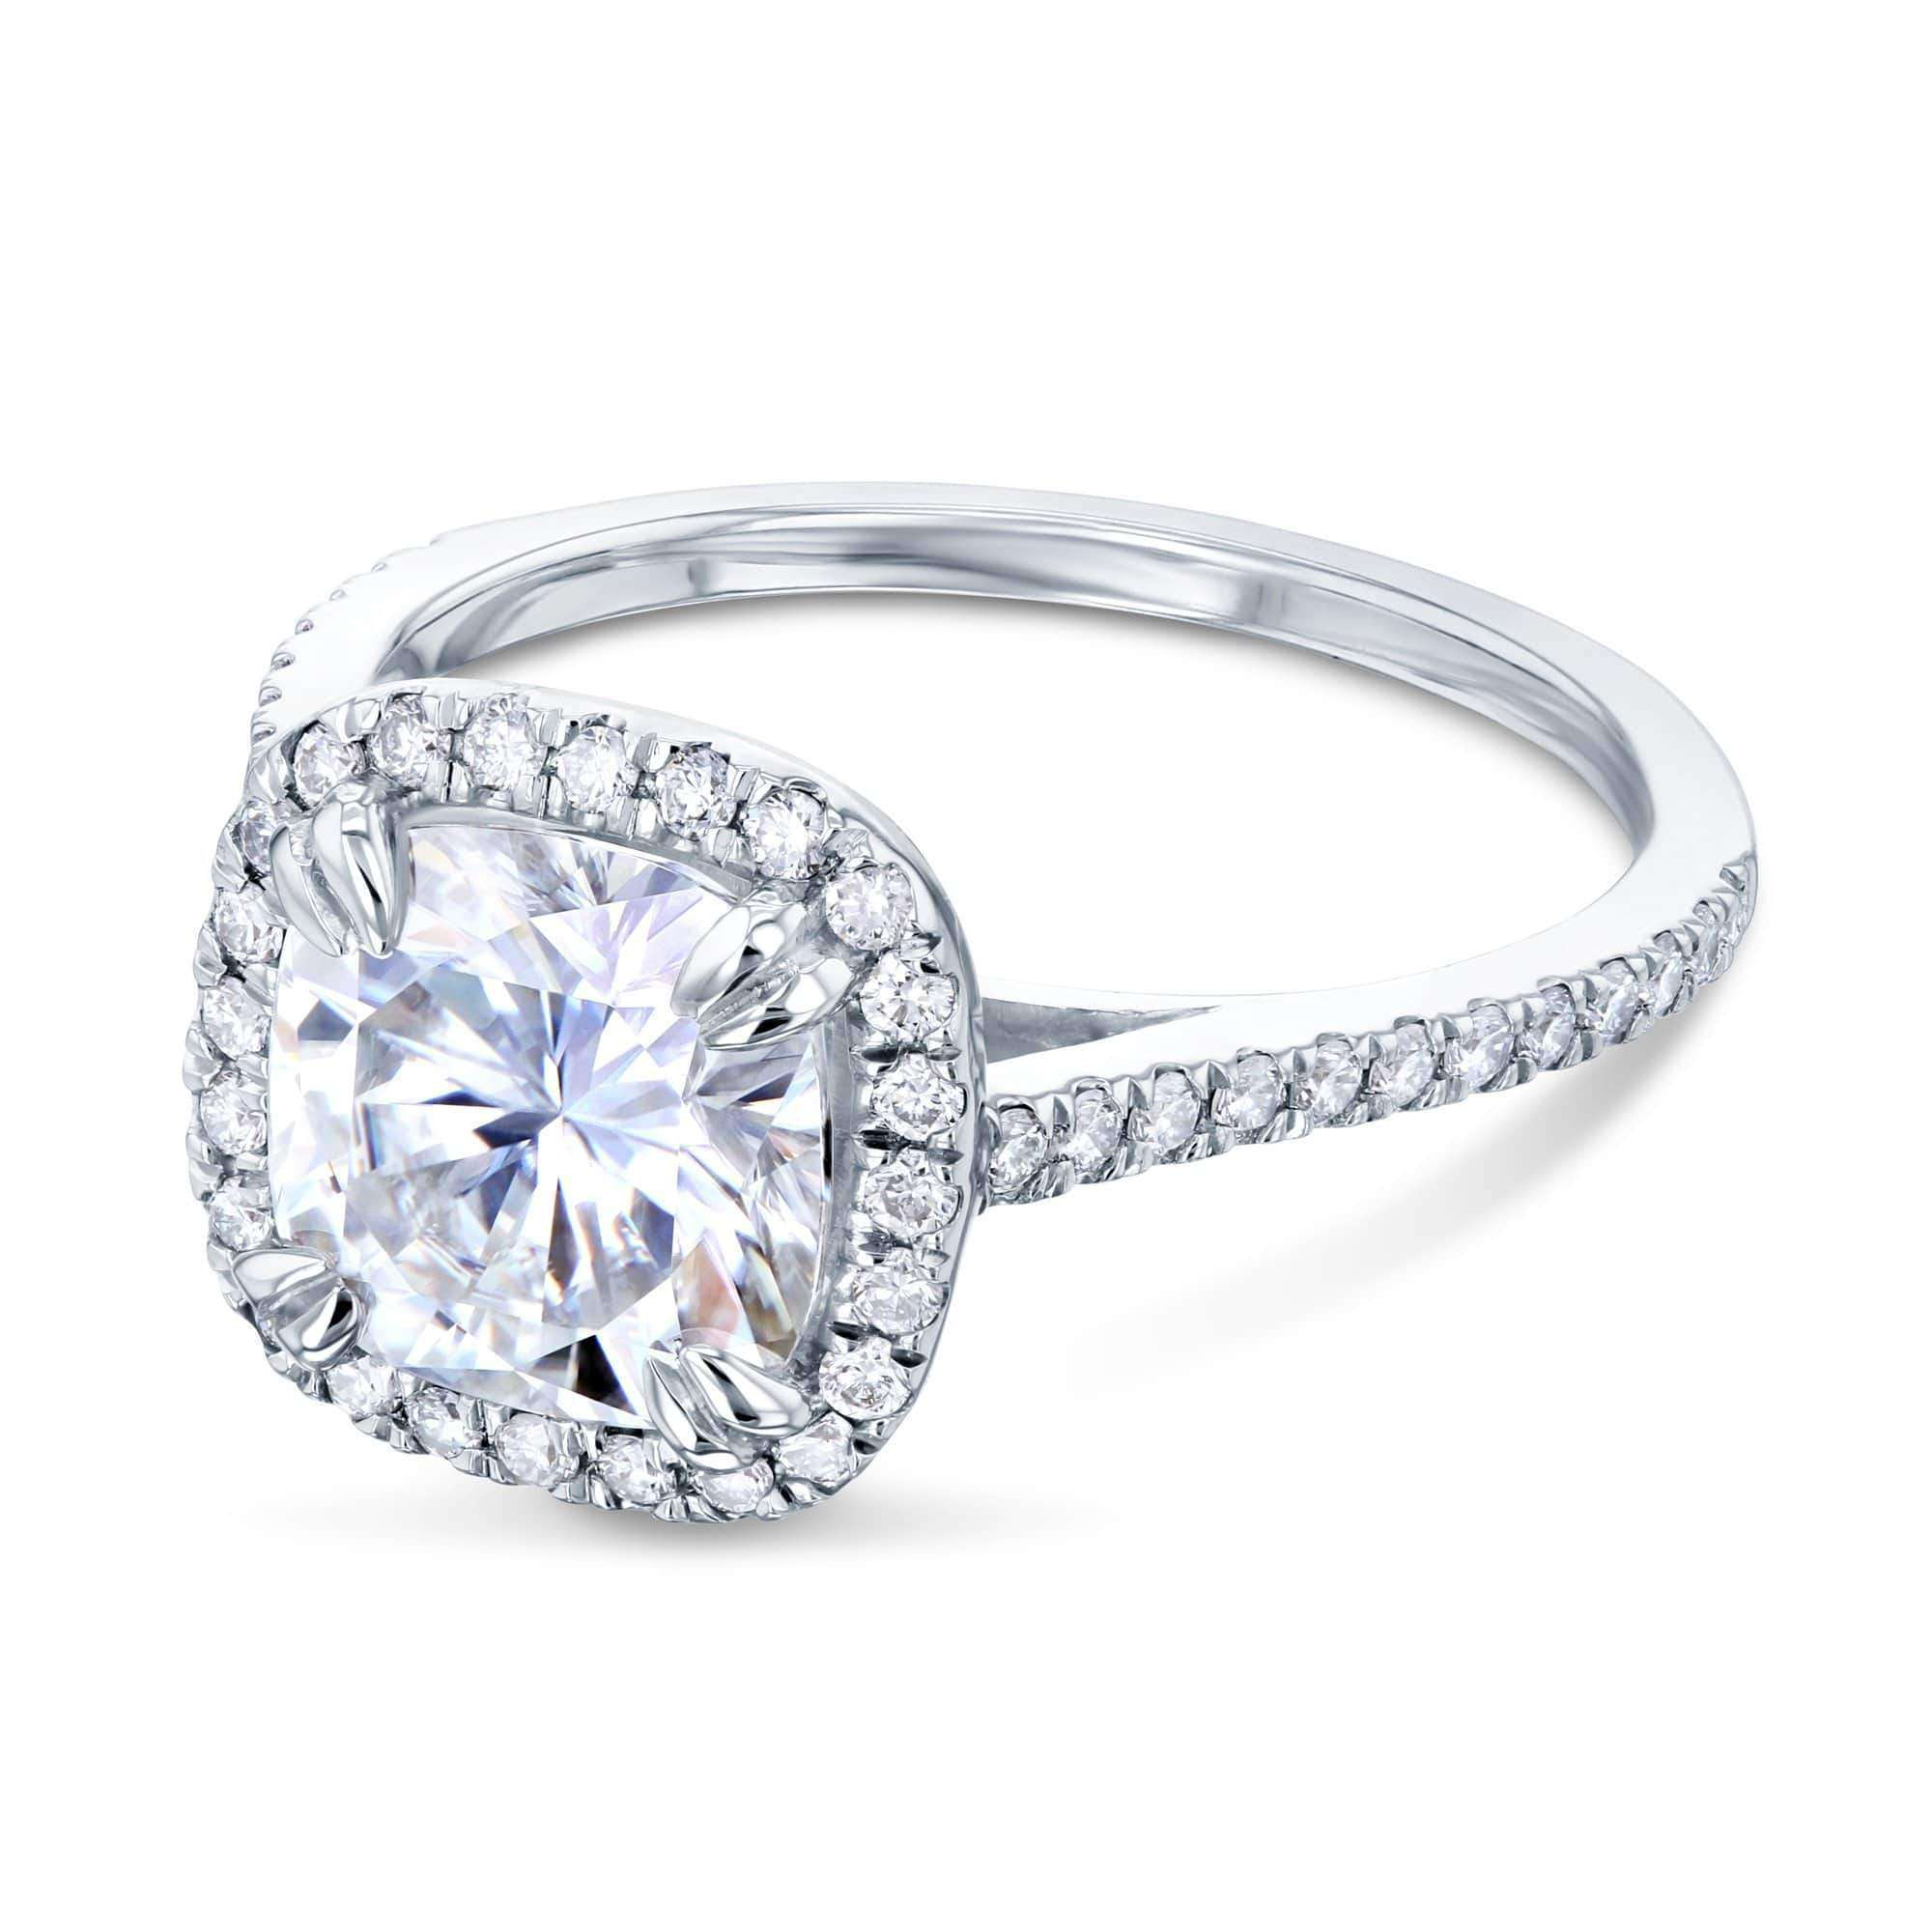 Top 2ct Cushion Forever One Moissanite Halo Ring - white-gold 6.5